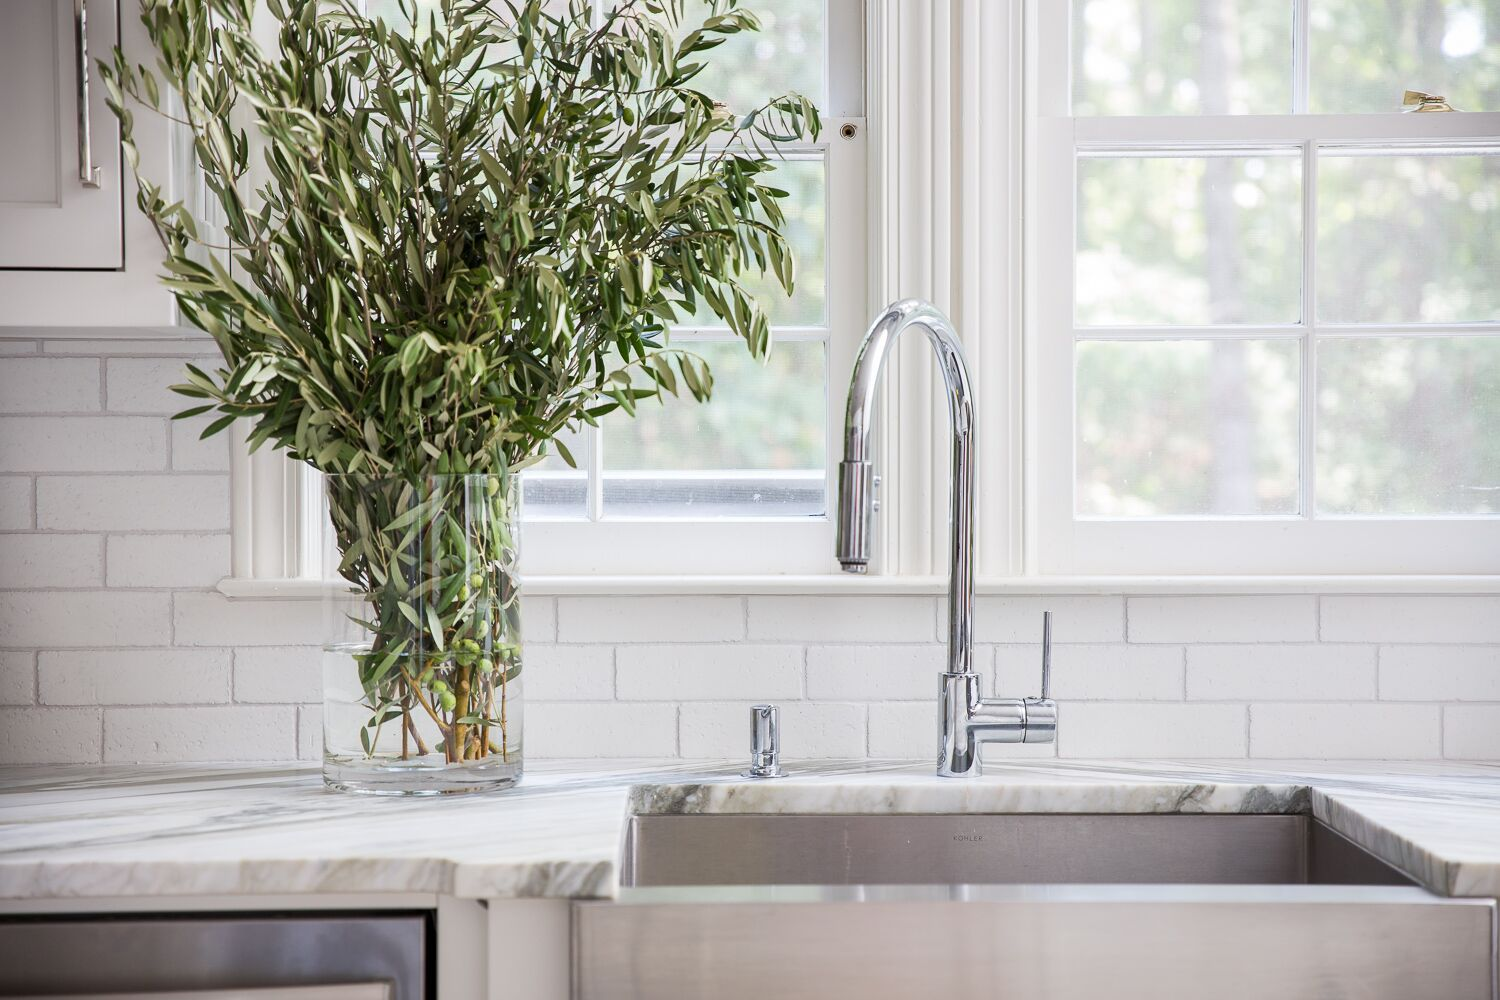 timeless classic kitchen tara fust design rohl faucet ann sacks subway tile greenery atlanta